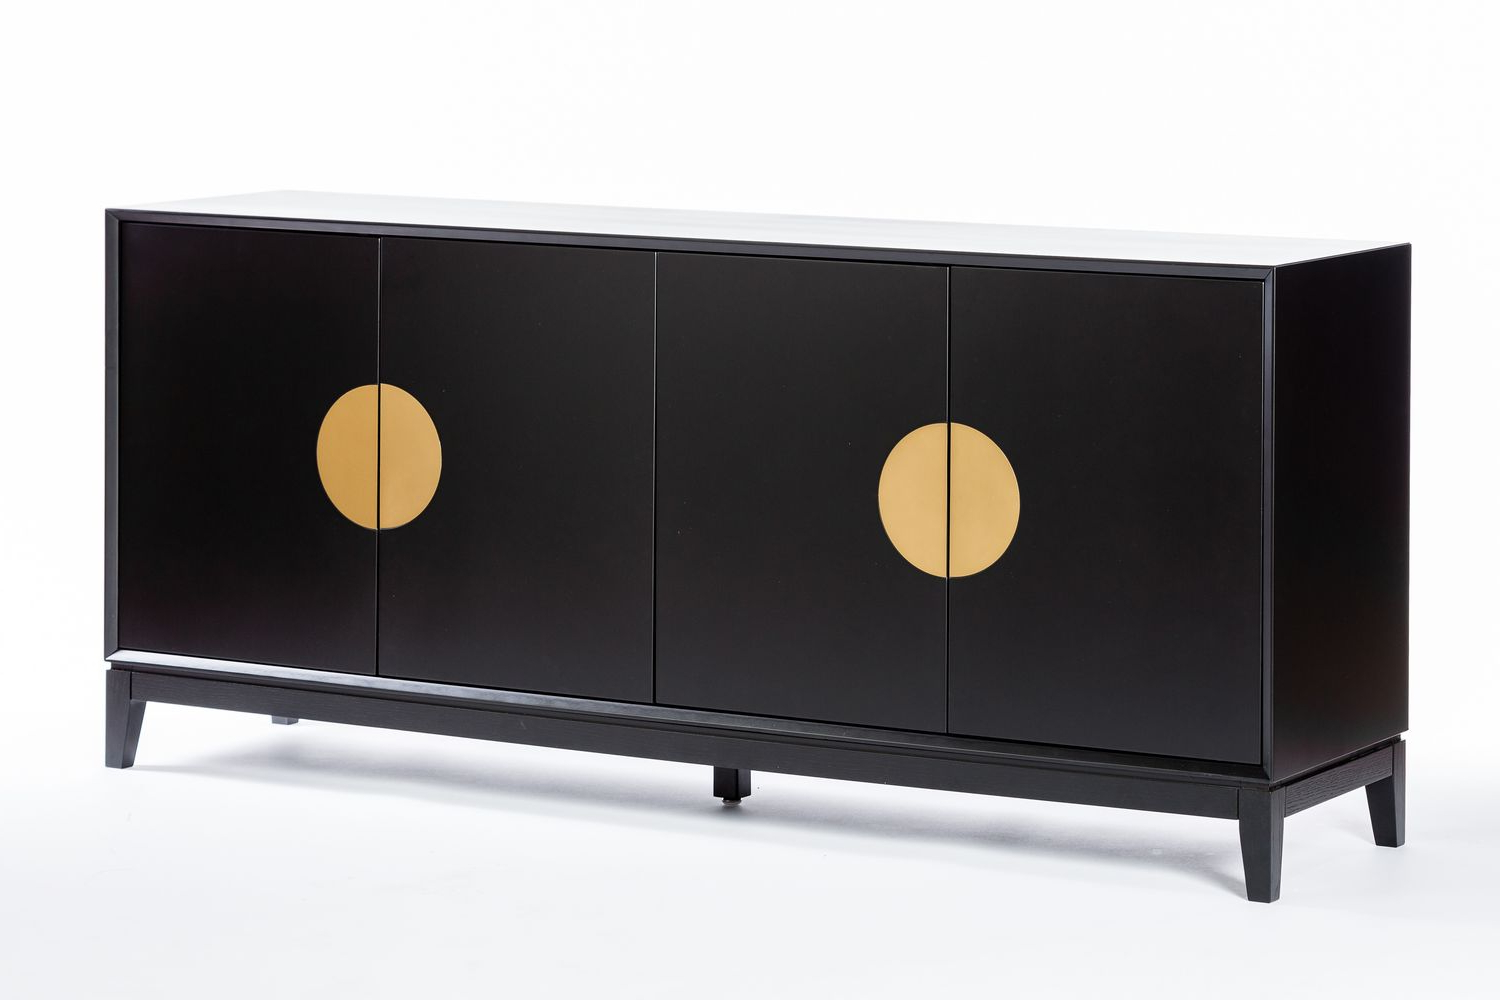 Rani 4 Door Sideboards Intended For Well Known Unico Milano (Gallery 18 of 20)